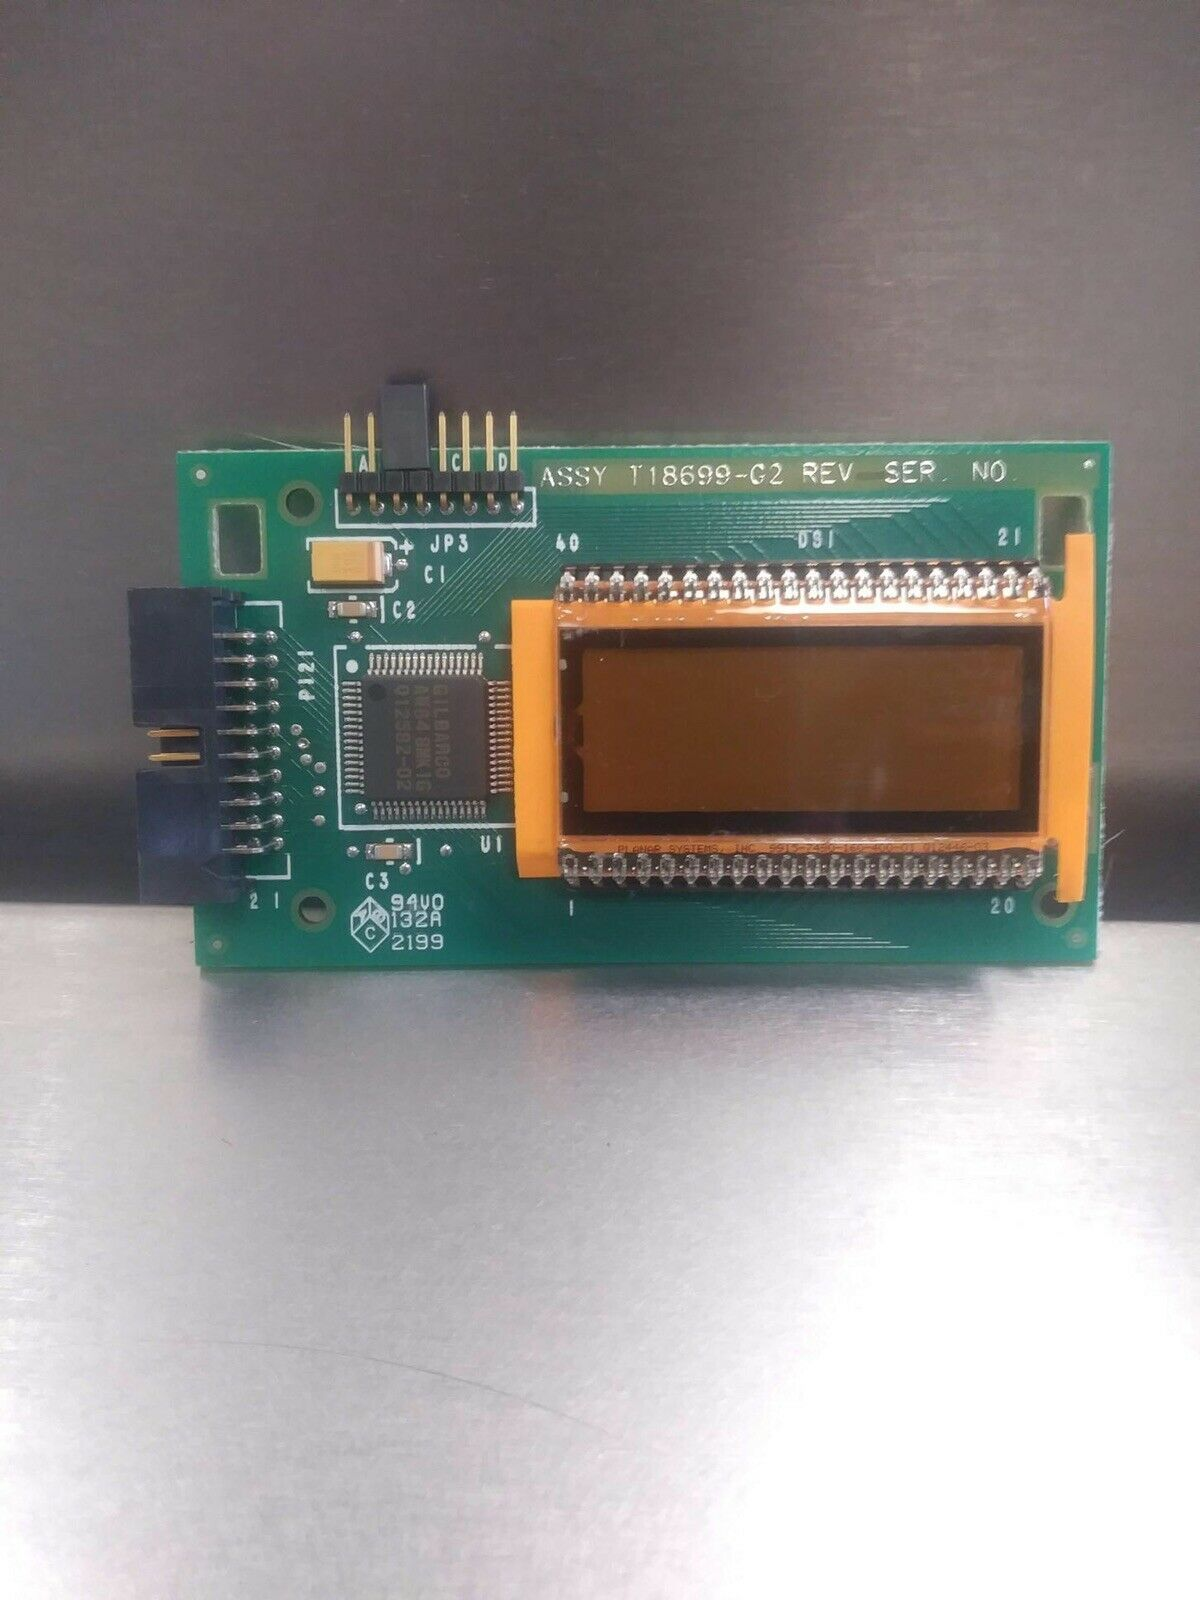 Lot of 4 Gilbarco T18699-G2 Single PPU LCD Display Boards